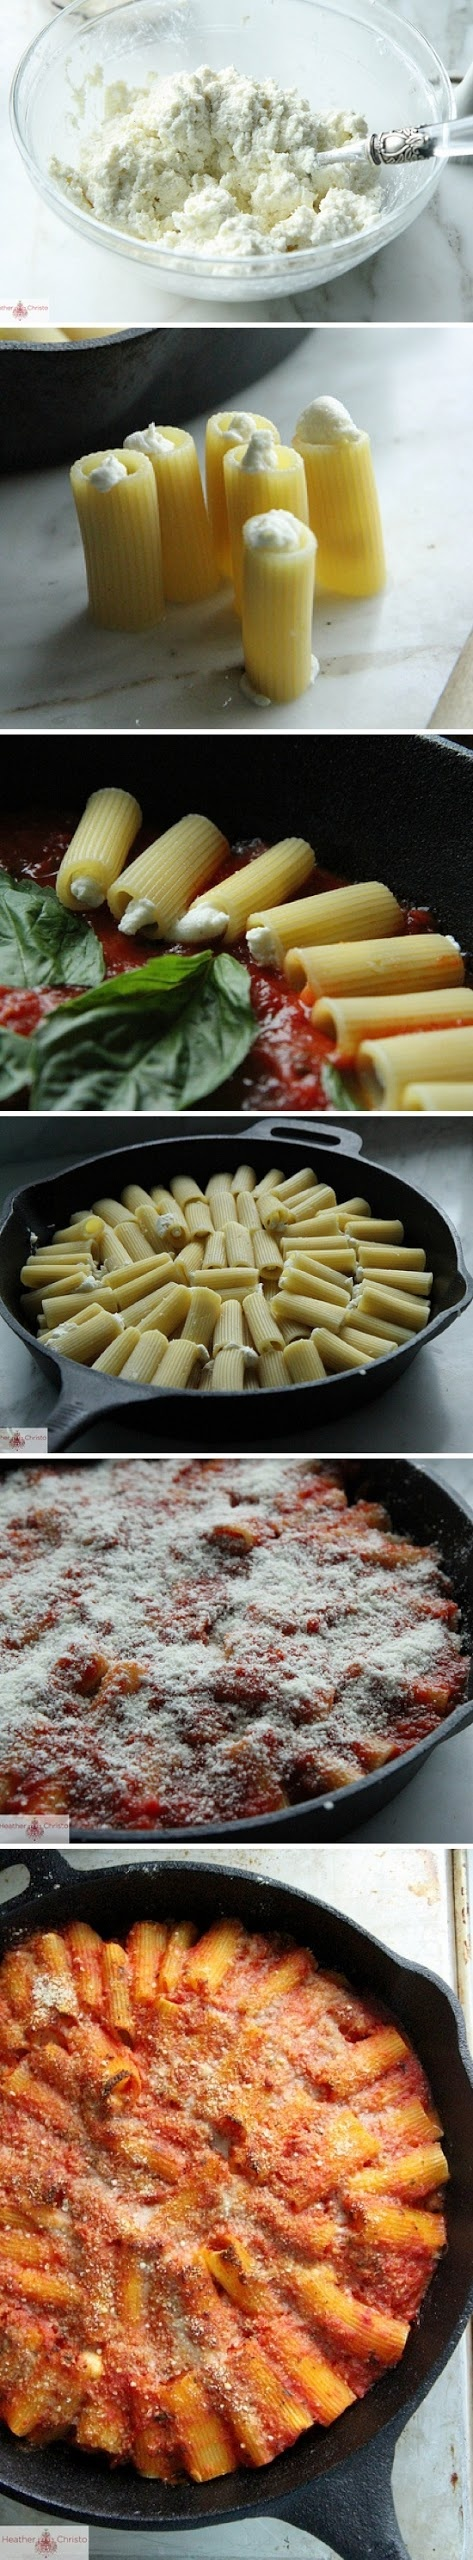 cookglee recipe pictures: Skillet Baked Stuffed Rigatoni